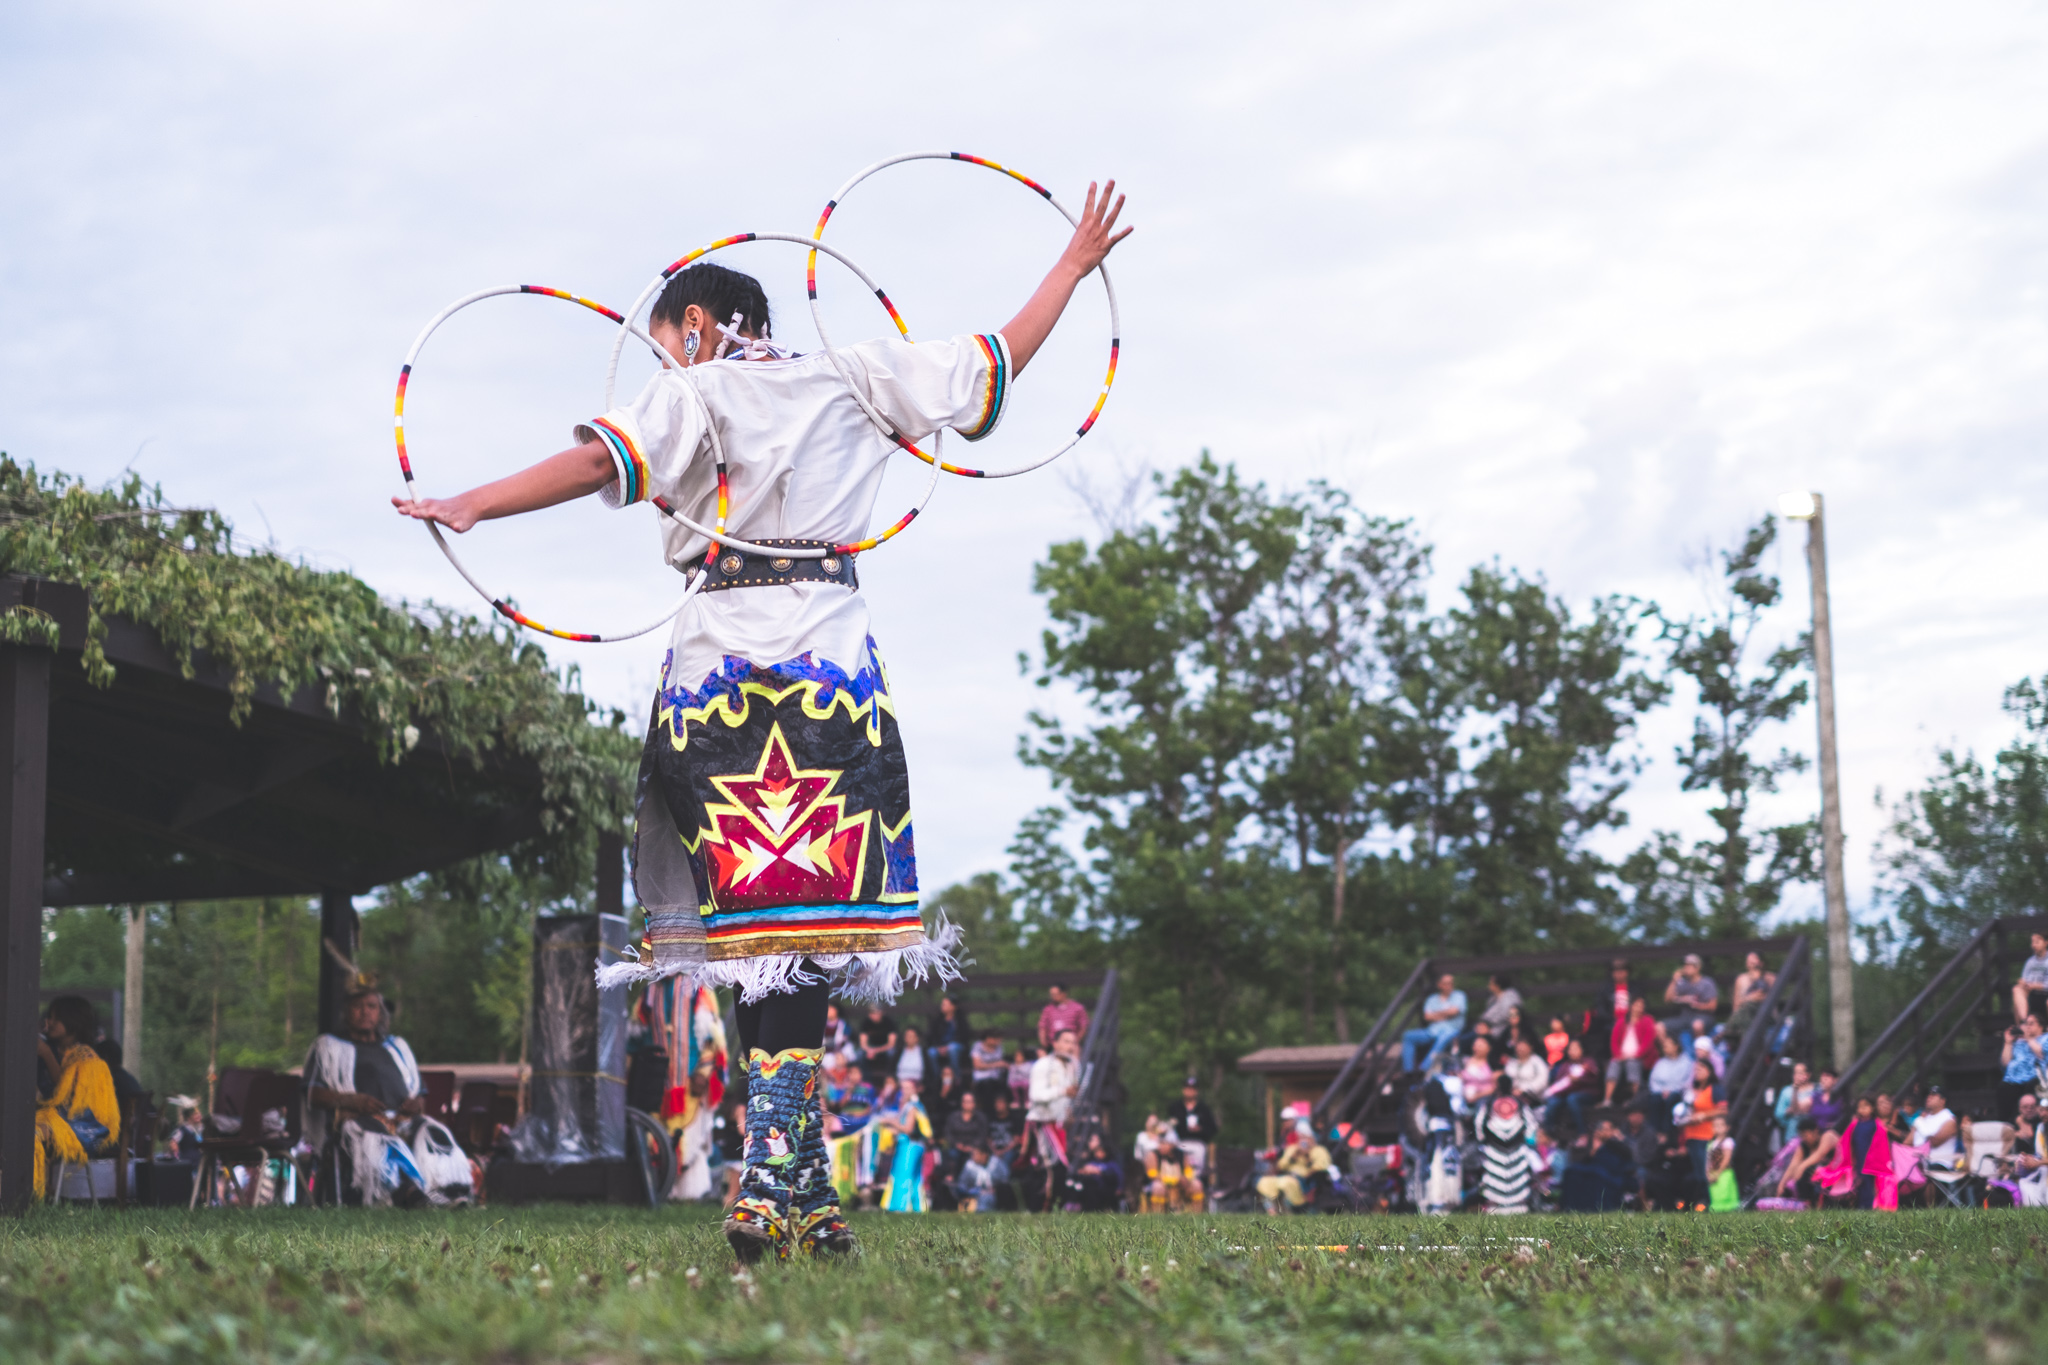 Shanley Spence, a hoop dancer and fancy shawl dancer living in Winnipeg, Manitoba, performs at the Eagle Lake First Nation Powwow